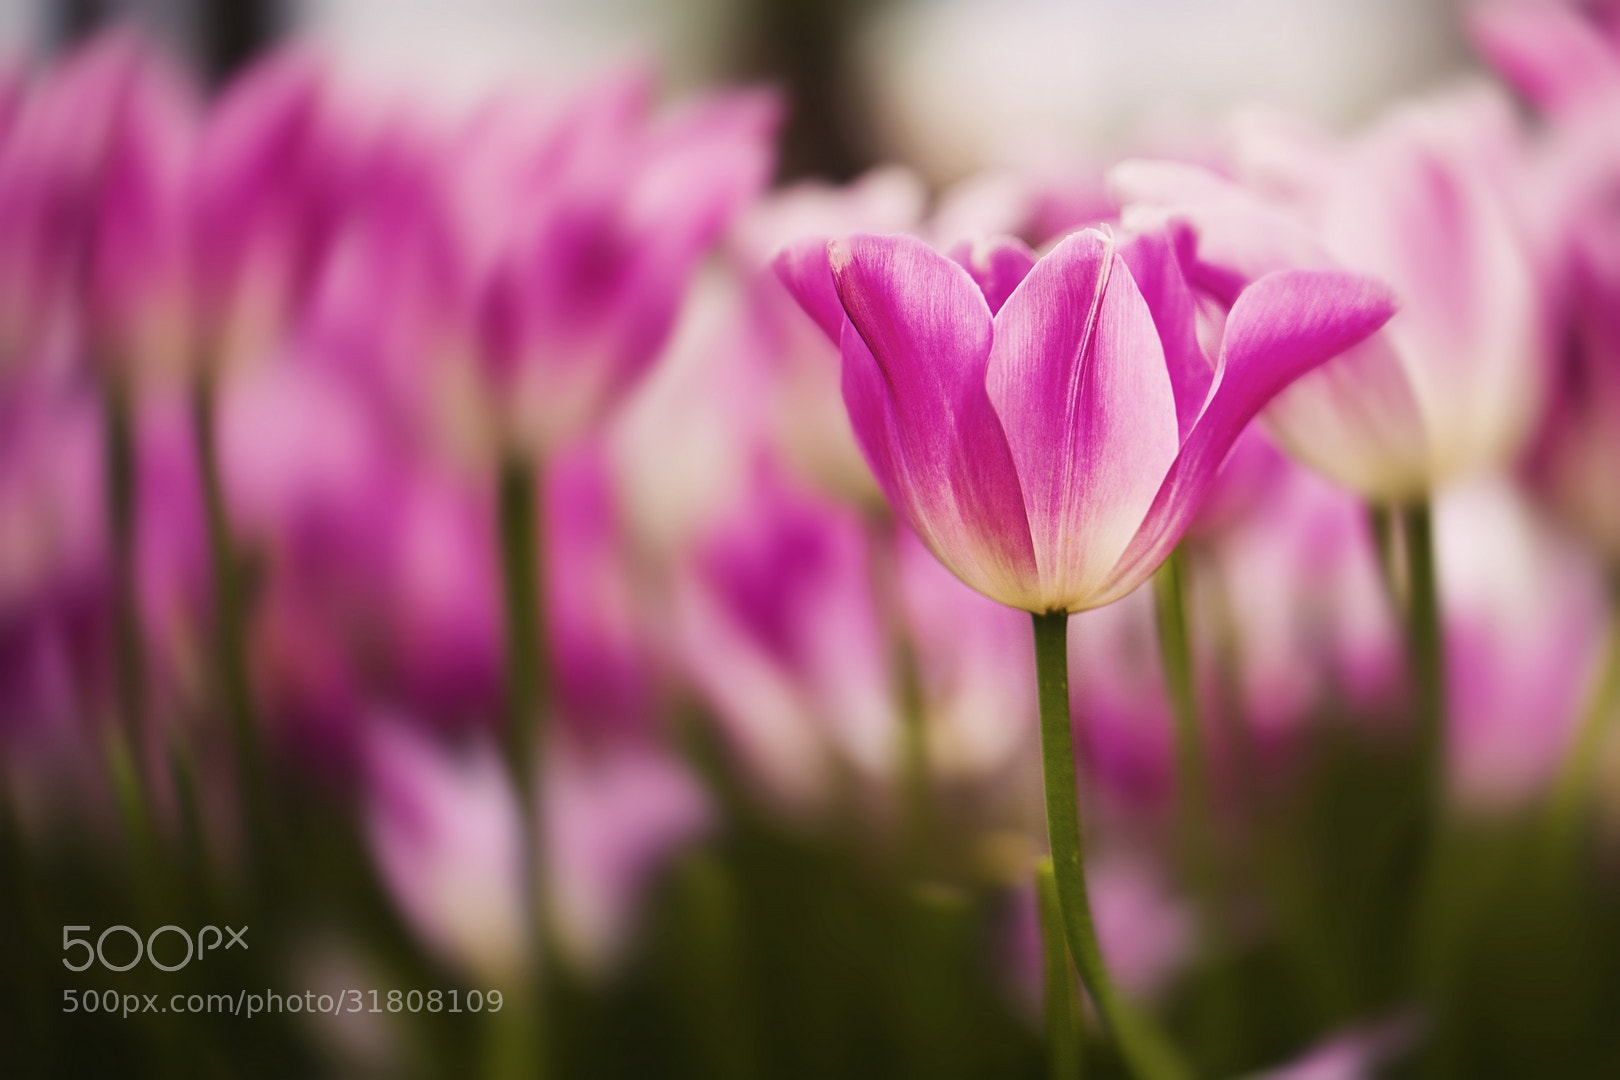 Photograph Tulips by Ömer Alp Evirgen on 500px